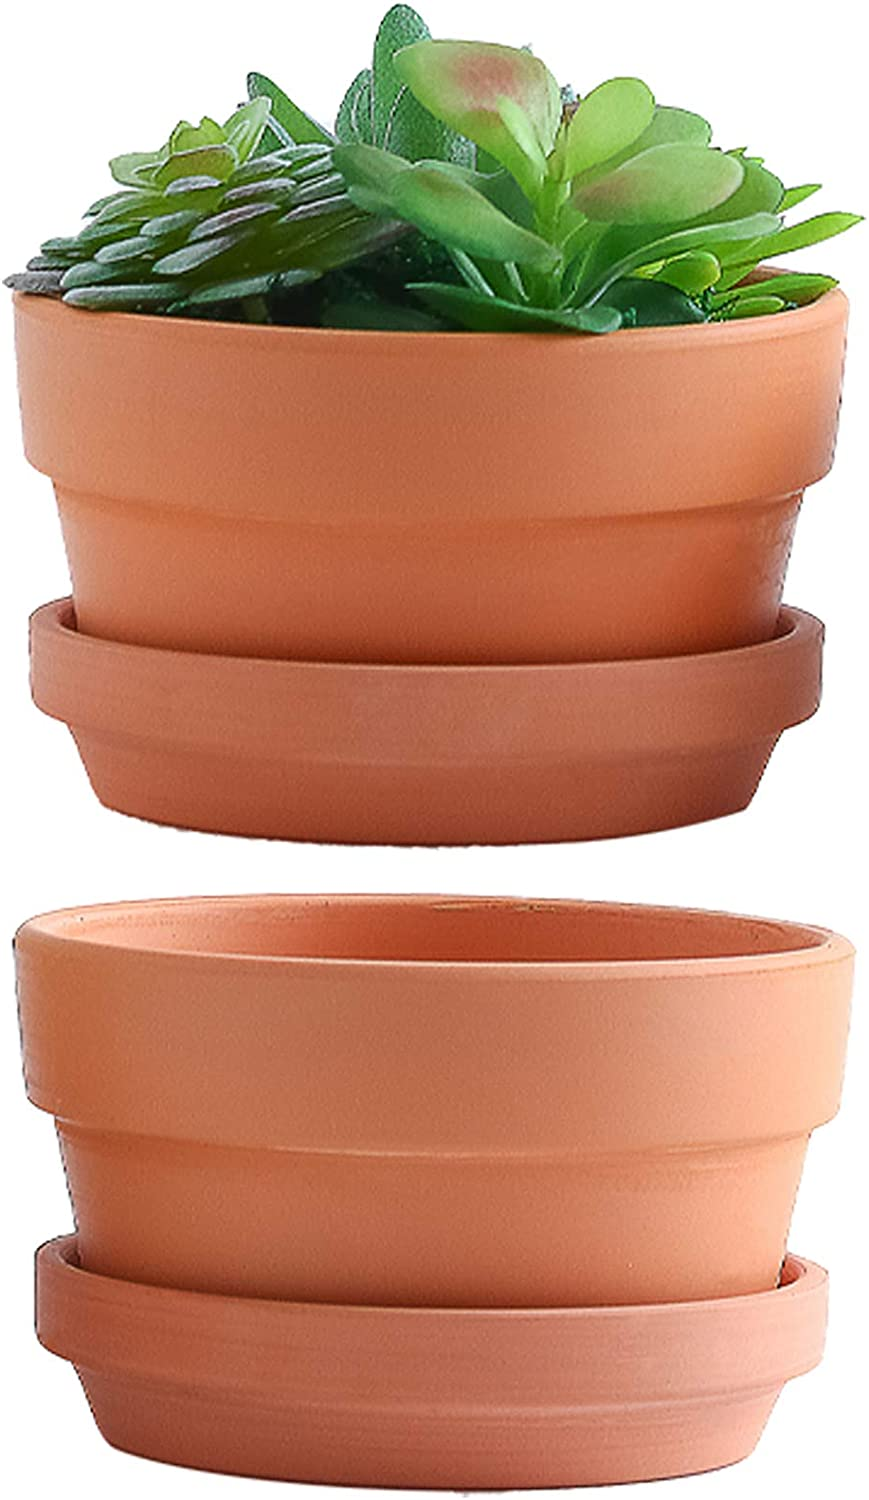 Yishang 7 Inch Terracotta Shallow Planters with Saucer/Tray,Ceramic Flower Clay Plant Pots with Drainage Hole,Unglazed Cactus/succlent Plant Containers Indoor Garden Bonsai Pots